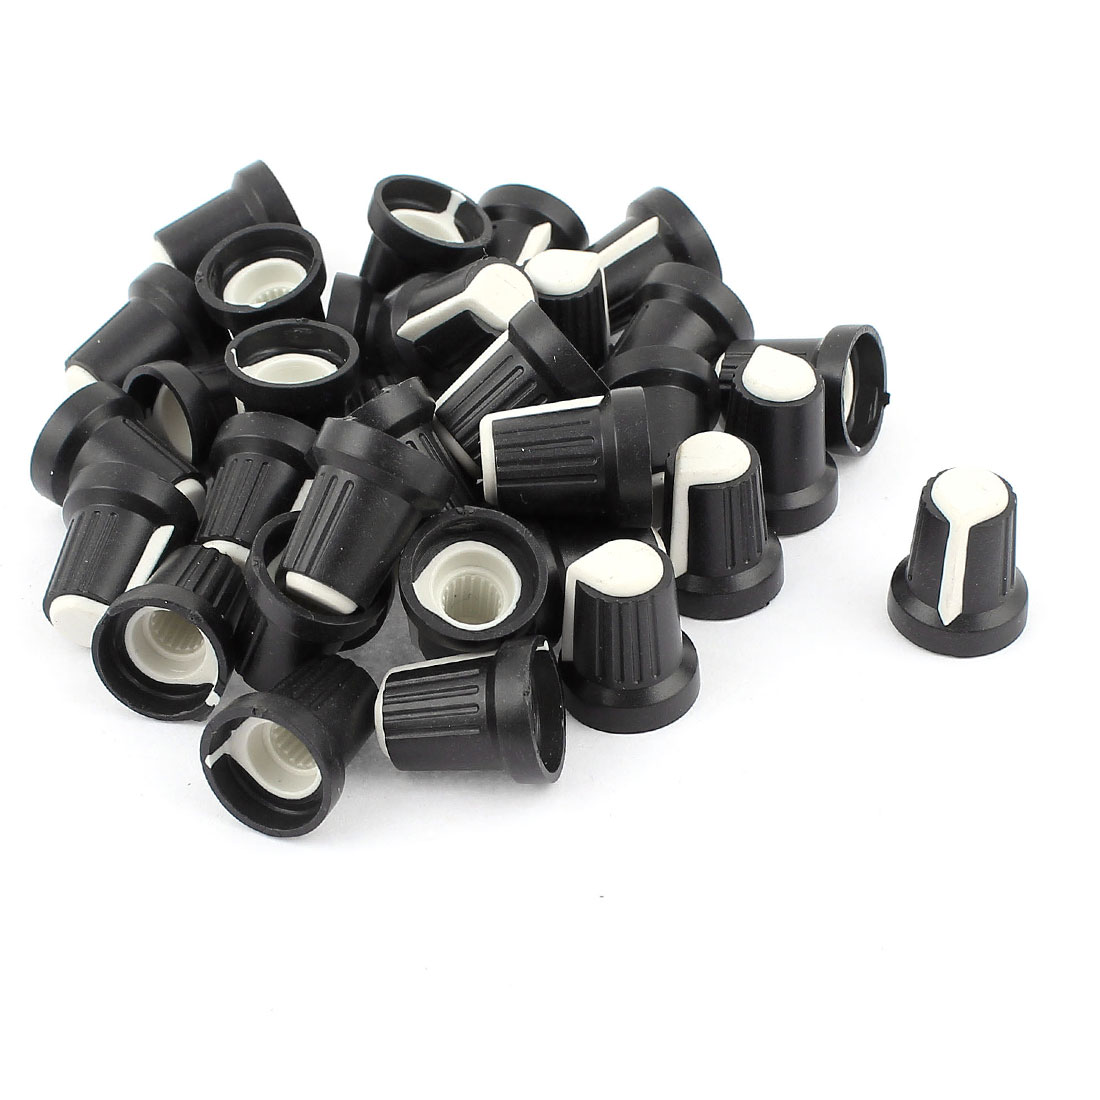 35pcs White Face Potentiometer Knob Cap for 6mm Knurled Shaft